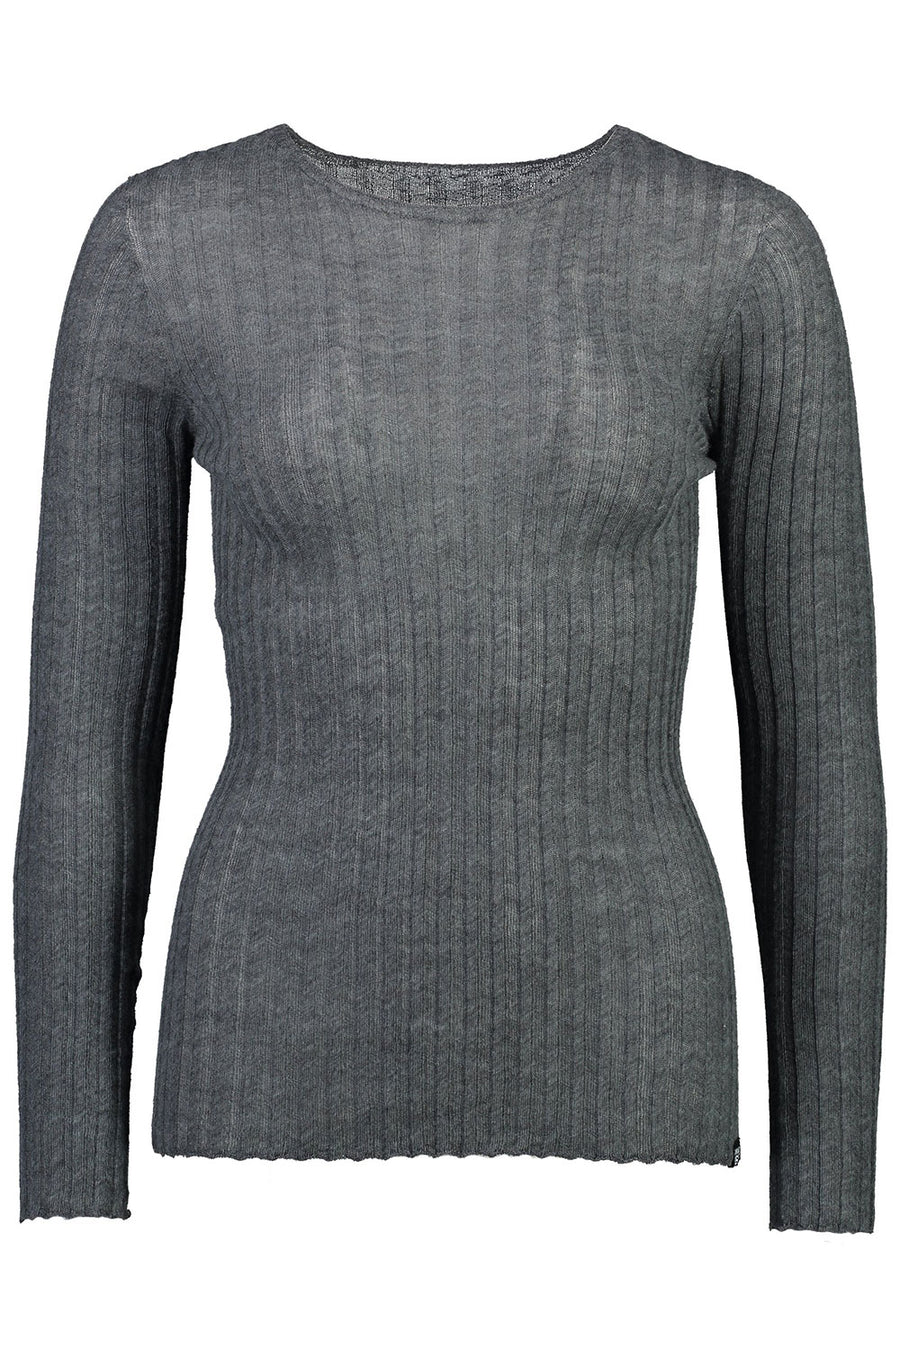 MERINO TULLE CREW | GREY MIX